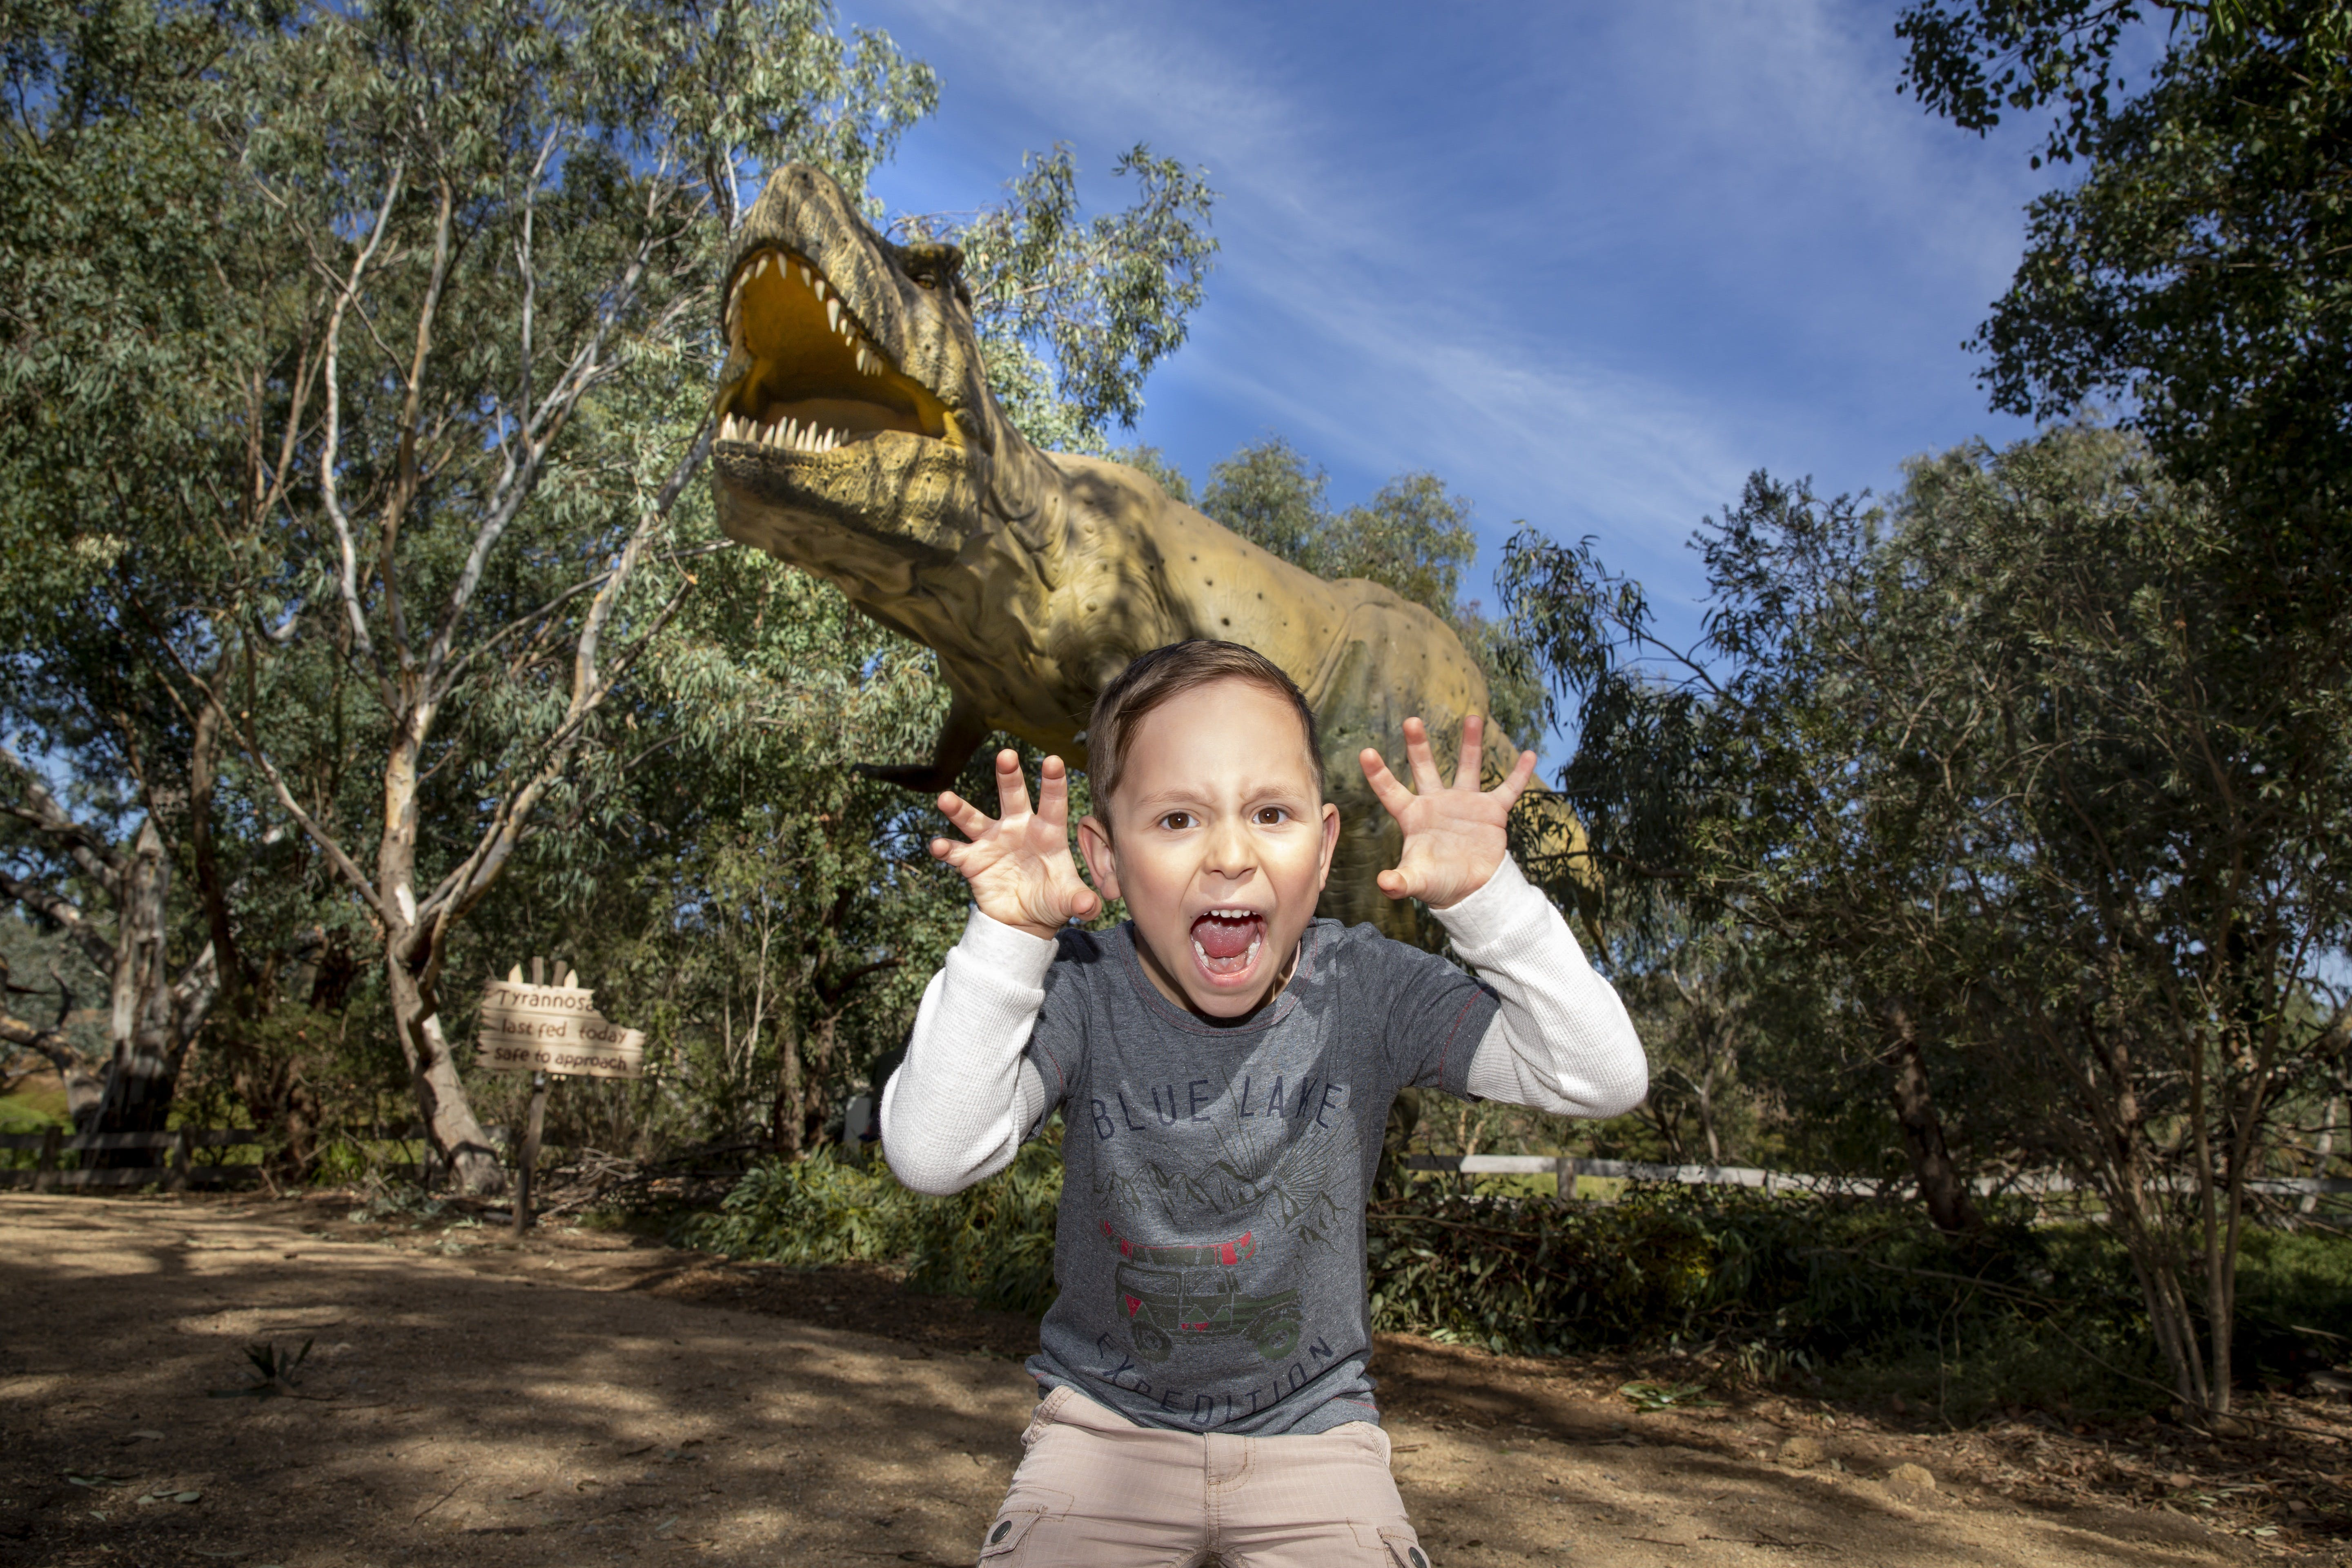 Zoorassic at Werribee Open Range Zoo. - Tourism TAS